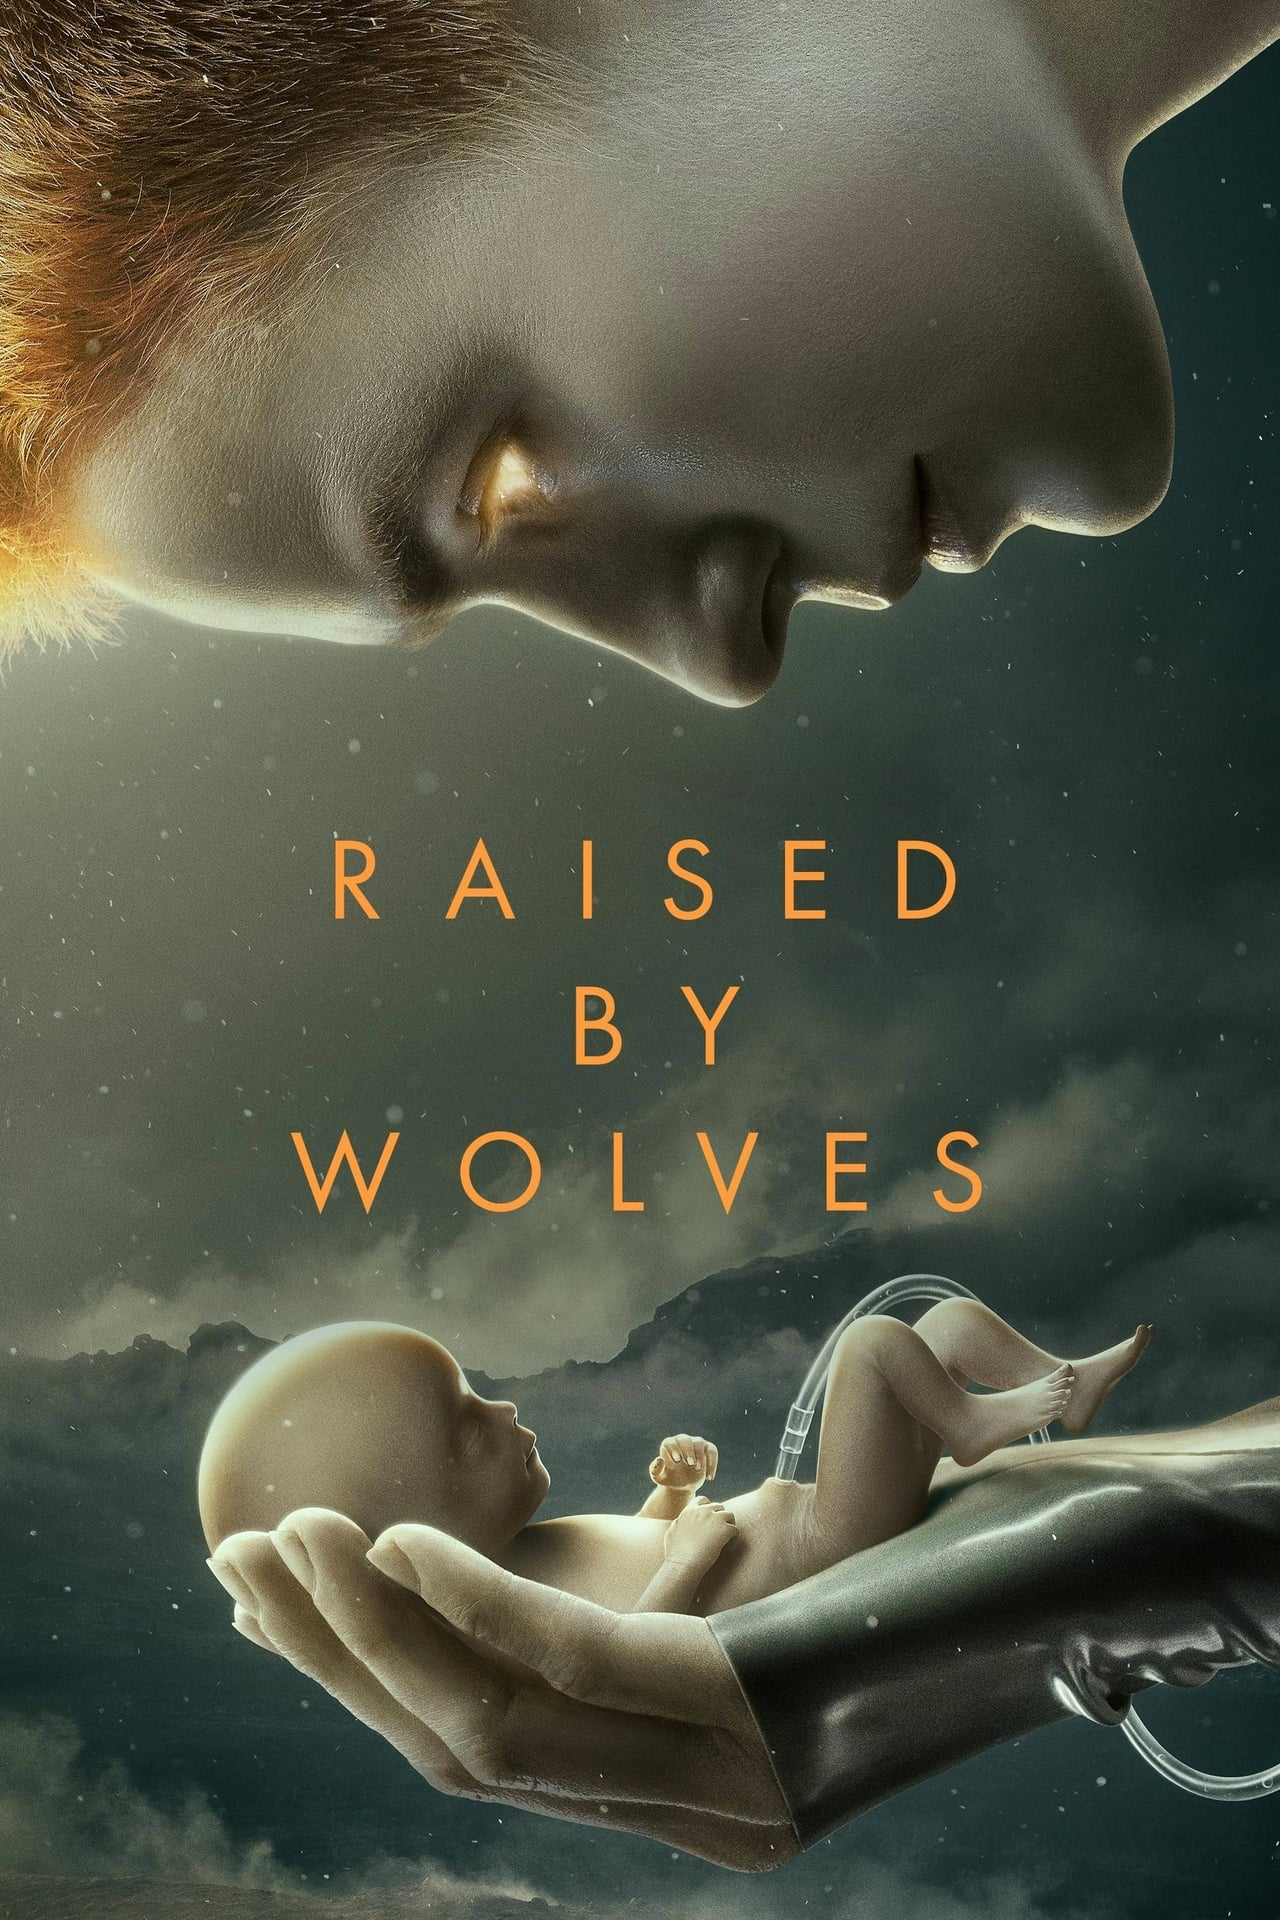 Download Raised by Wolves 2020 (Season 1) {English With Subtitles} 720p HEVC WeB-HD [250MB]